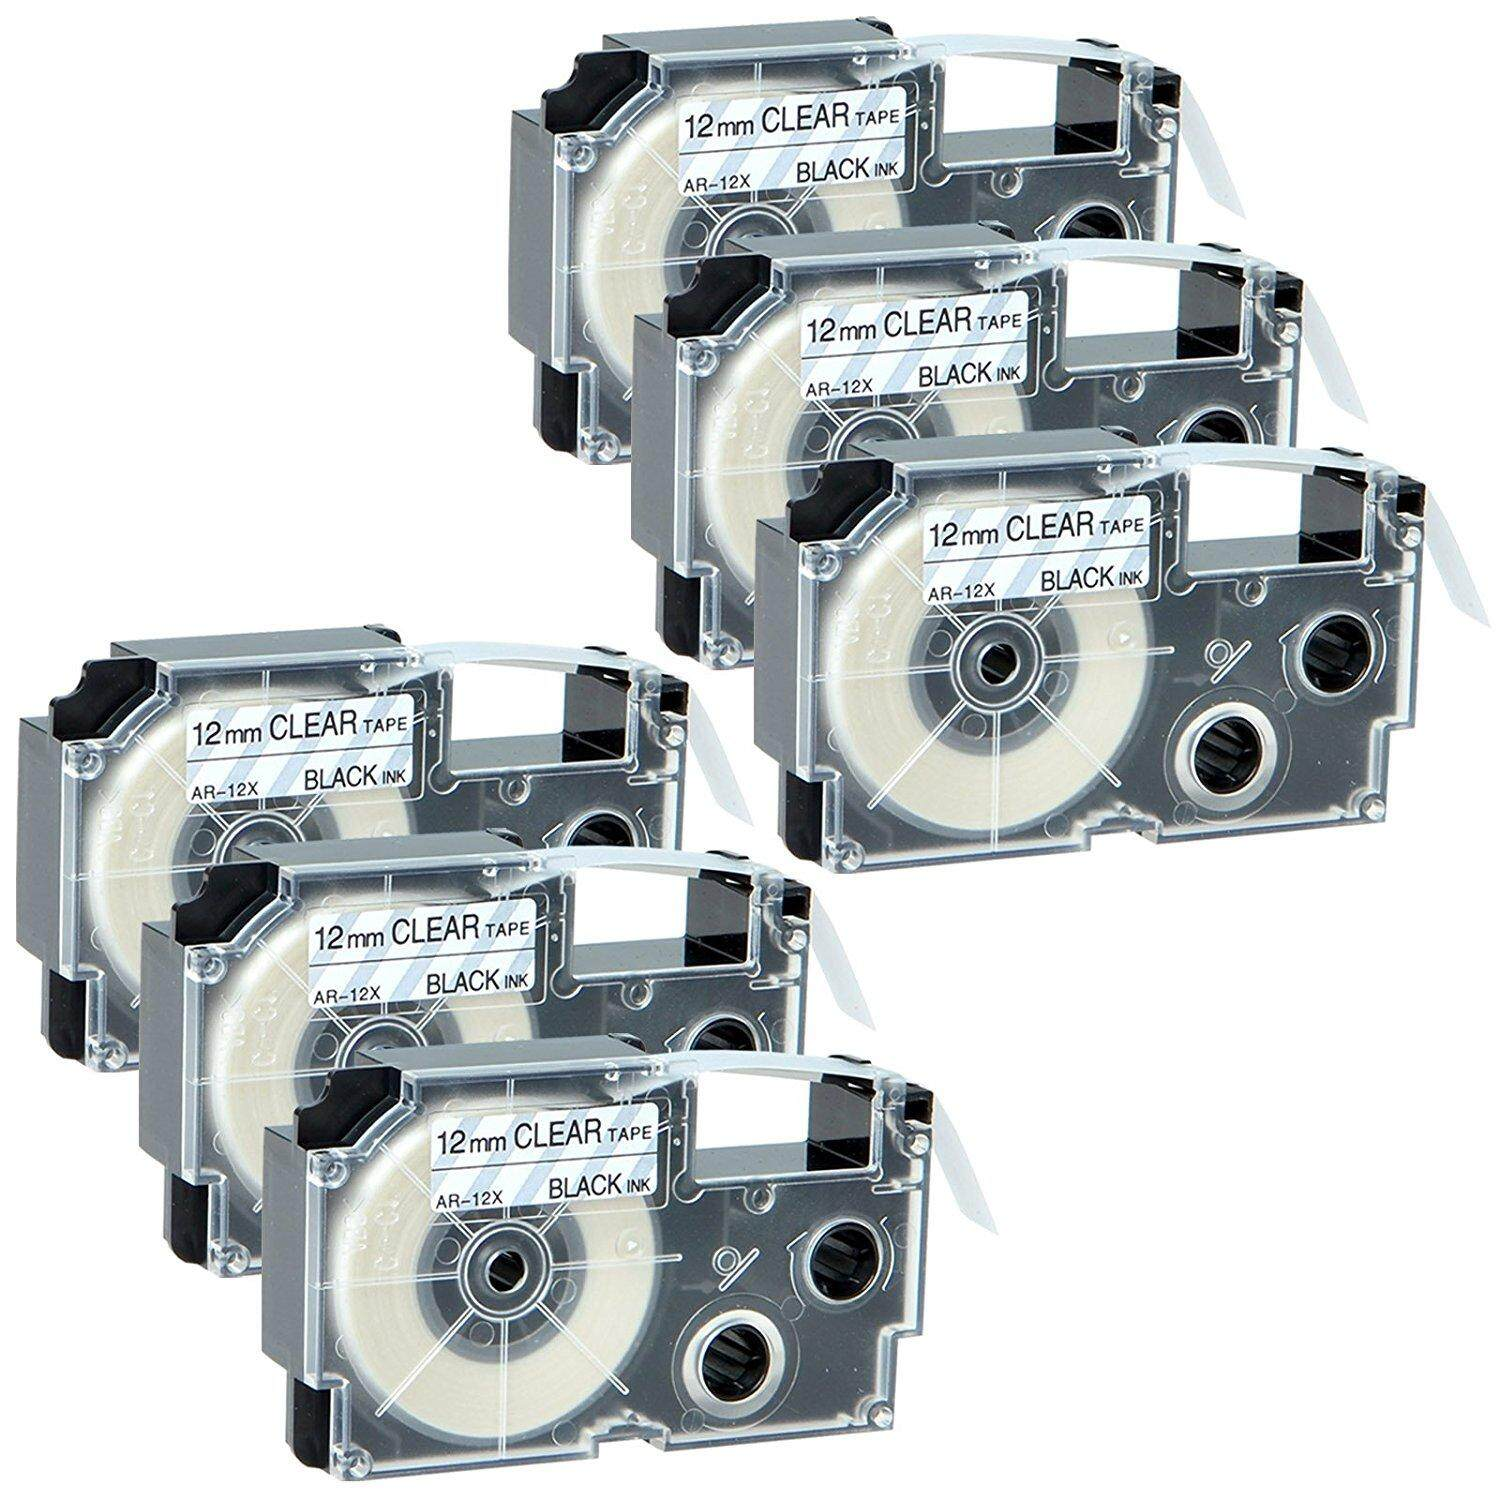 6x Labels for Casio XR-12X XR12X Adhesive Tape 12mm x 8m Black on Clear